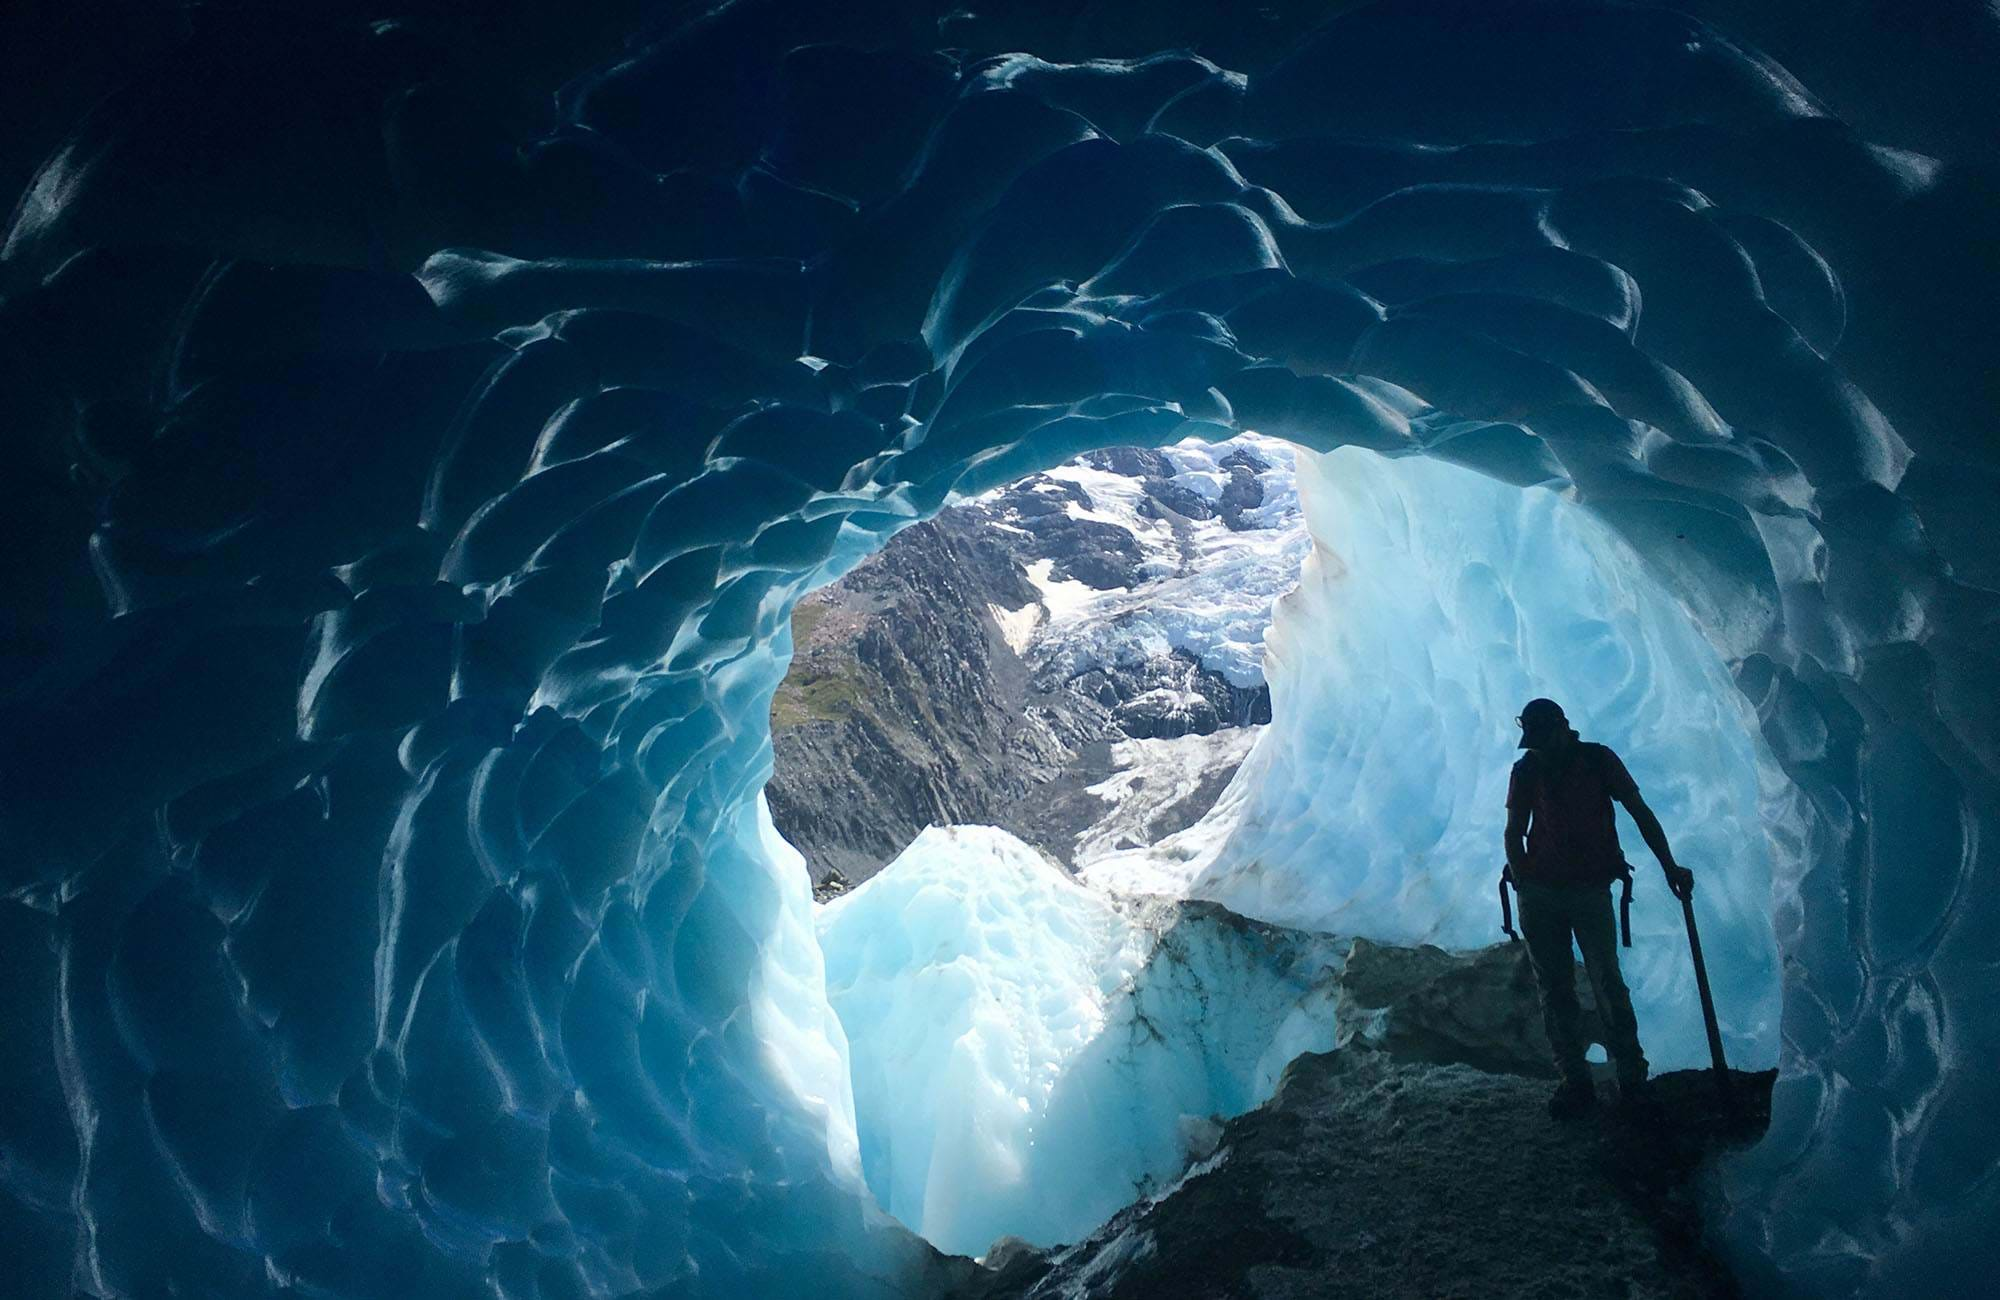 southern-island-new-zealand-tasman-glacier-man-standing-in-glacier-cover